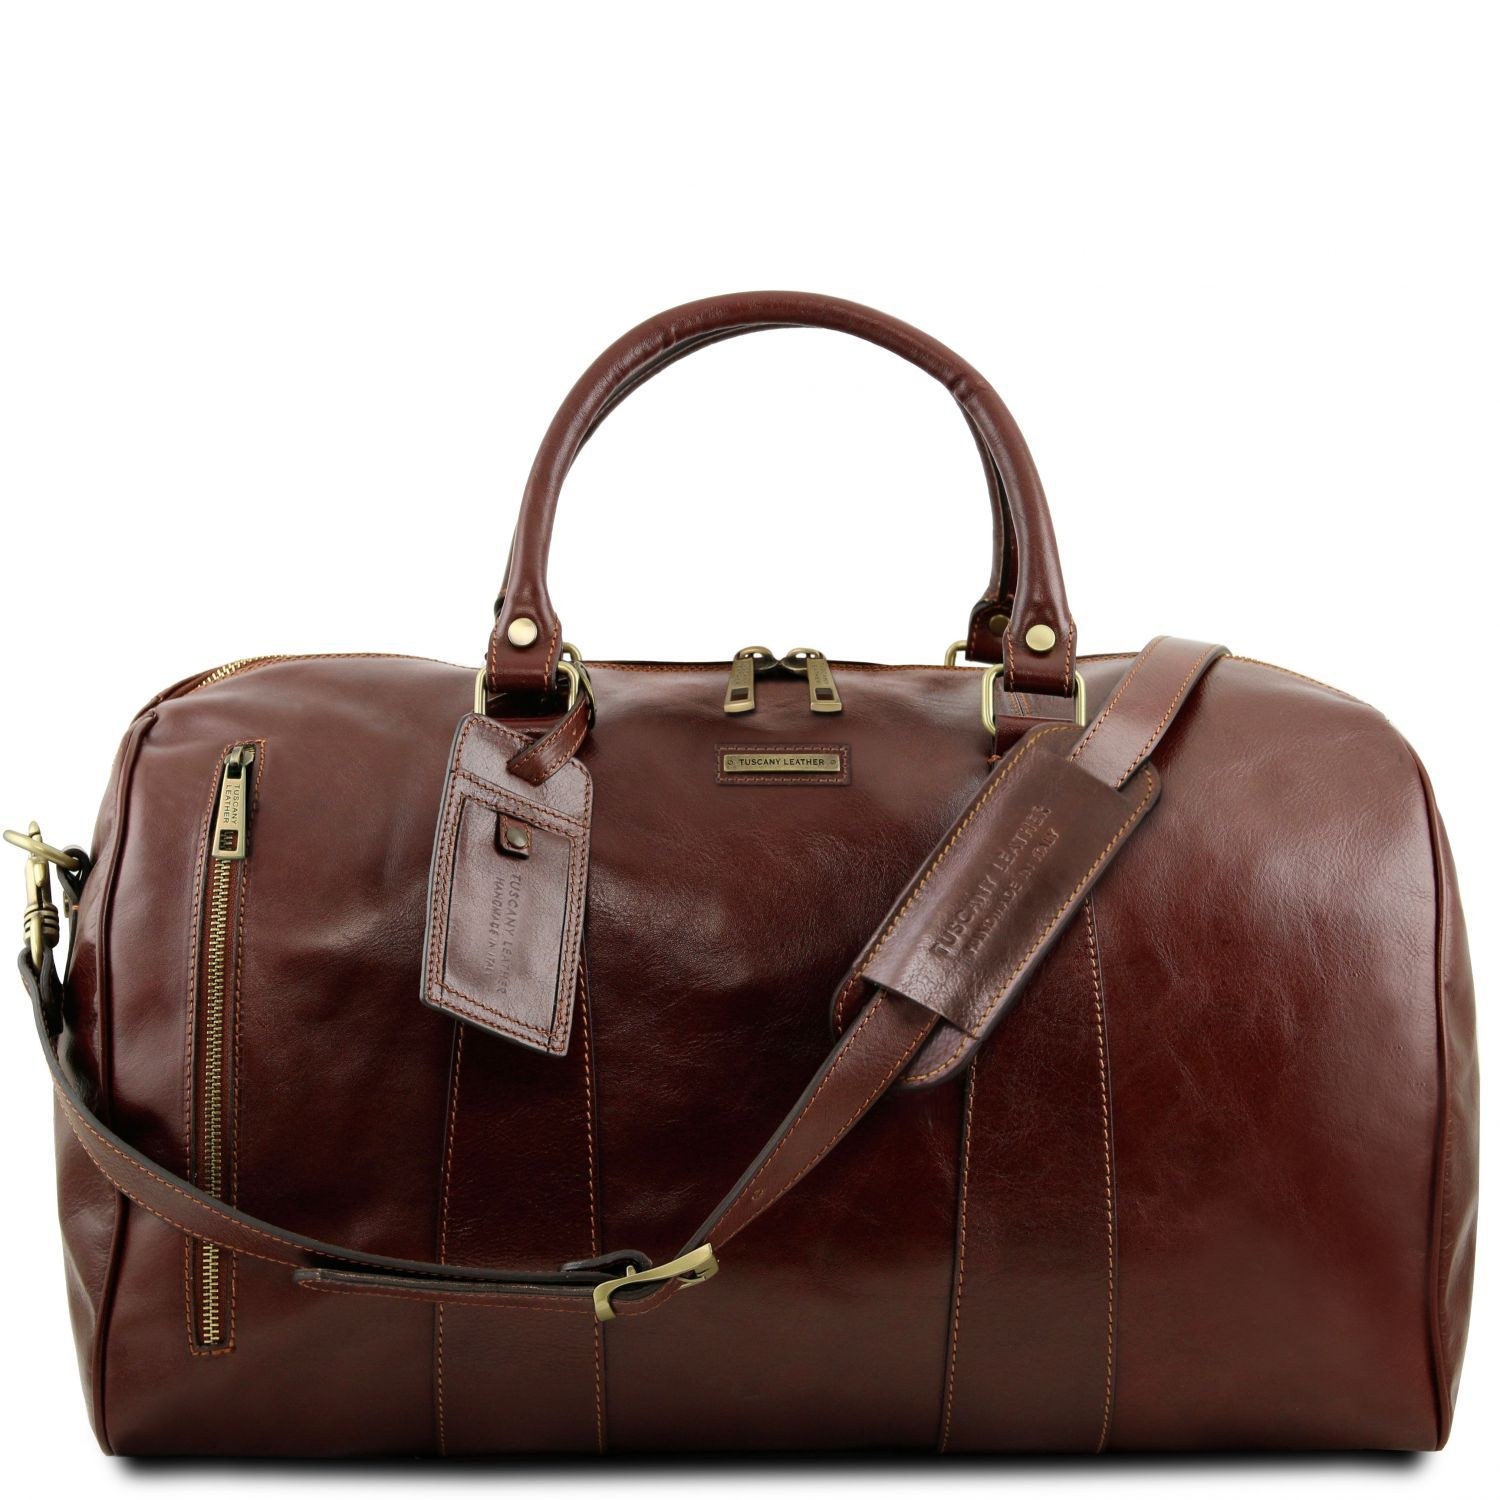 TL Voyager - Travel leather duffle bag - Large size (TL141794) - Leather Travel bags | DILUSSOBAGS